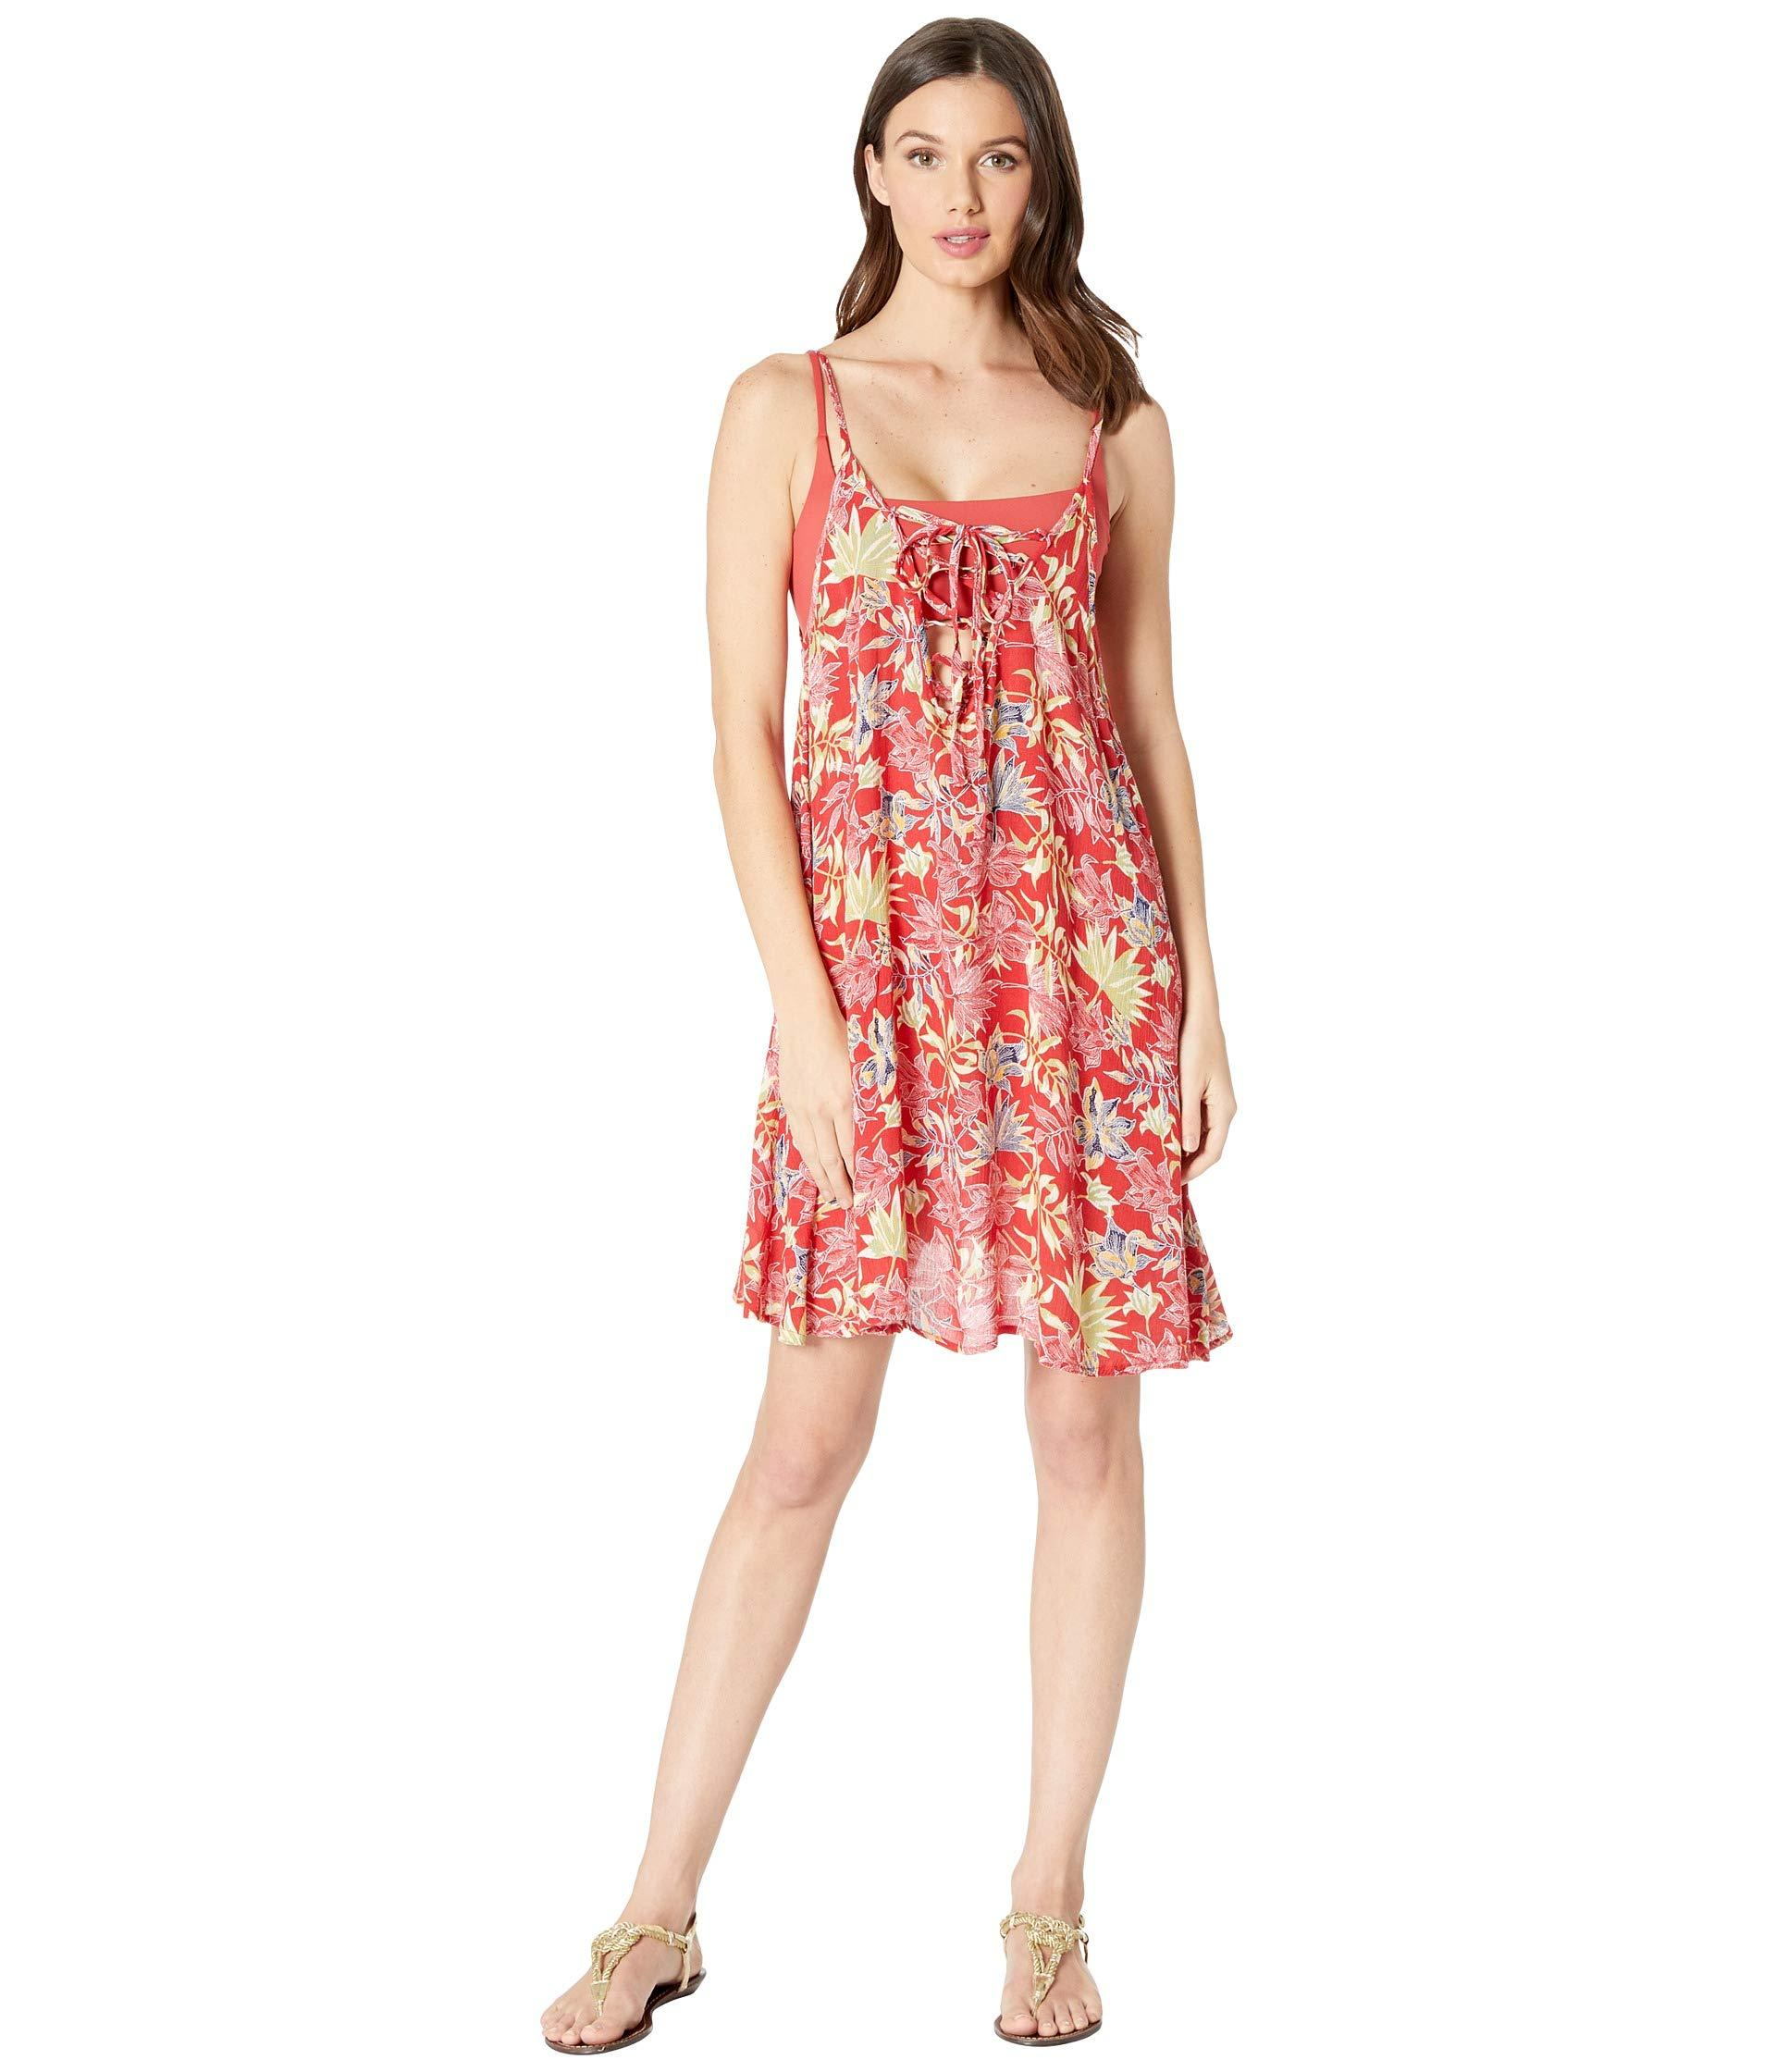 2df04f4e0c Roxy Printed Softly Love Cover-up Swimsuit Dress in Red - Lyst